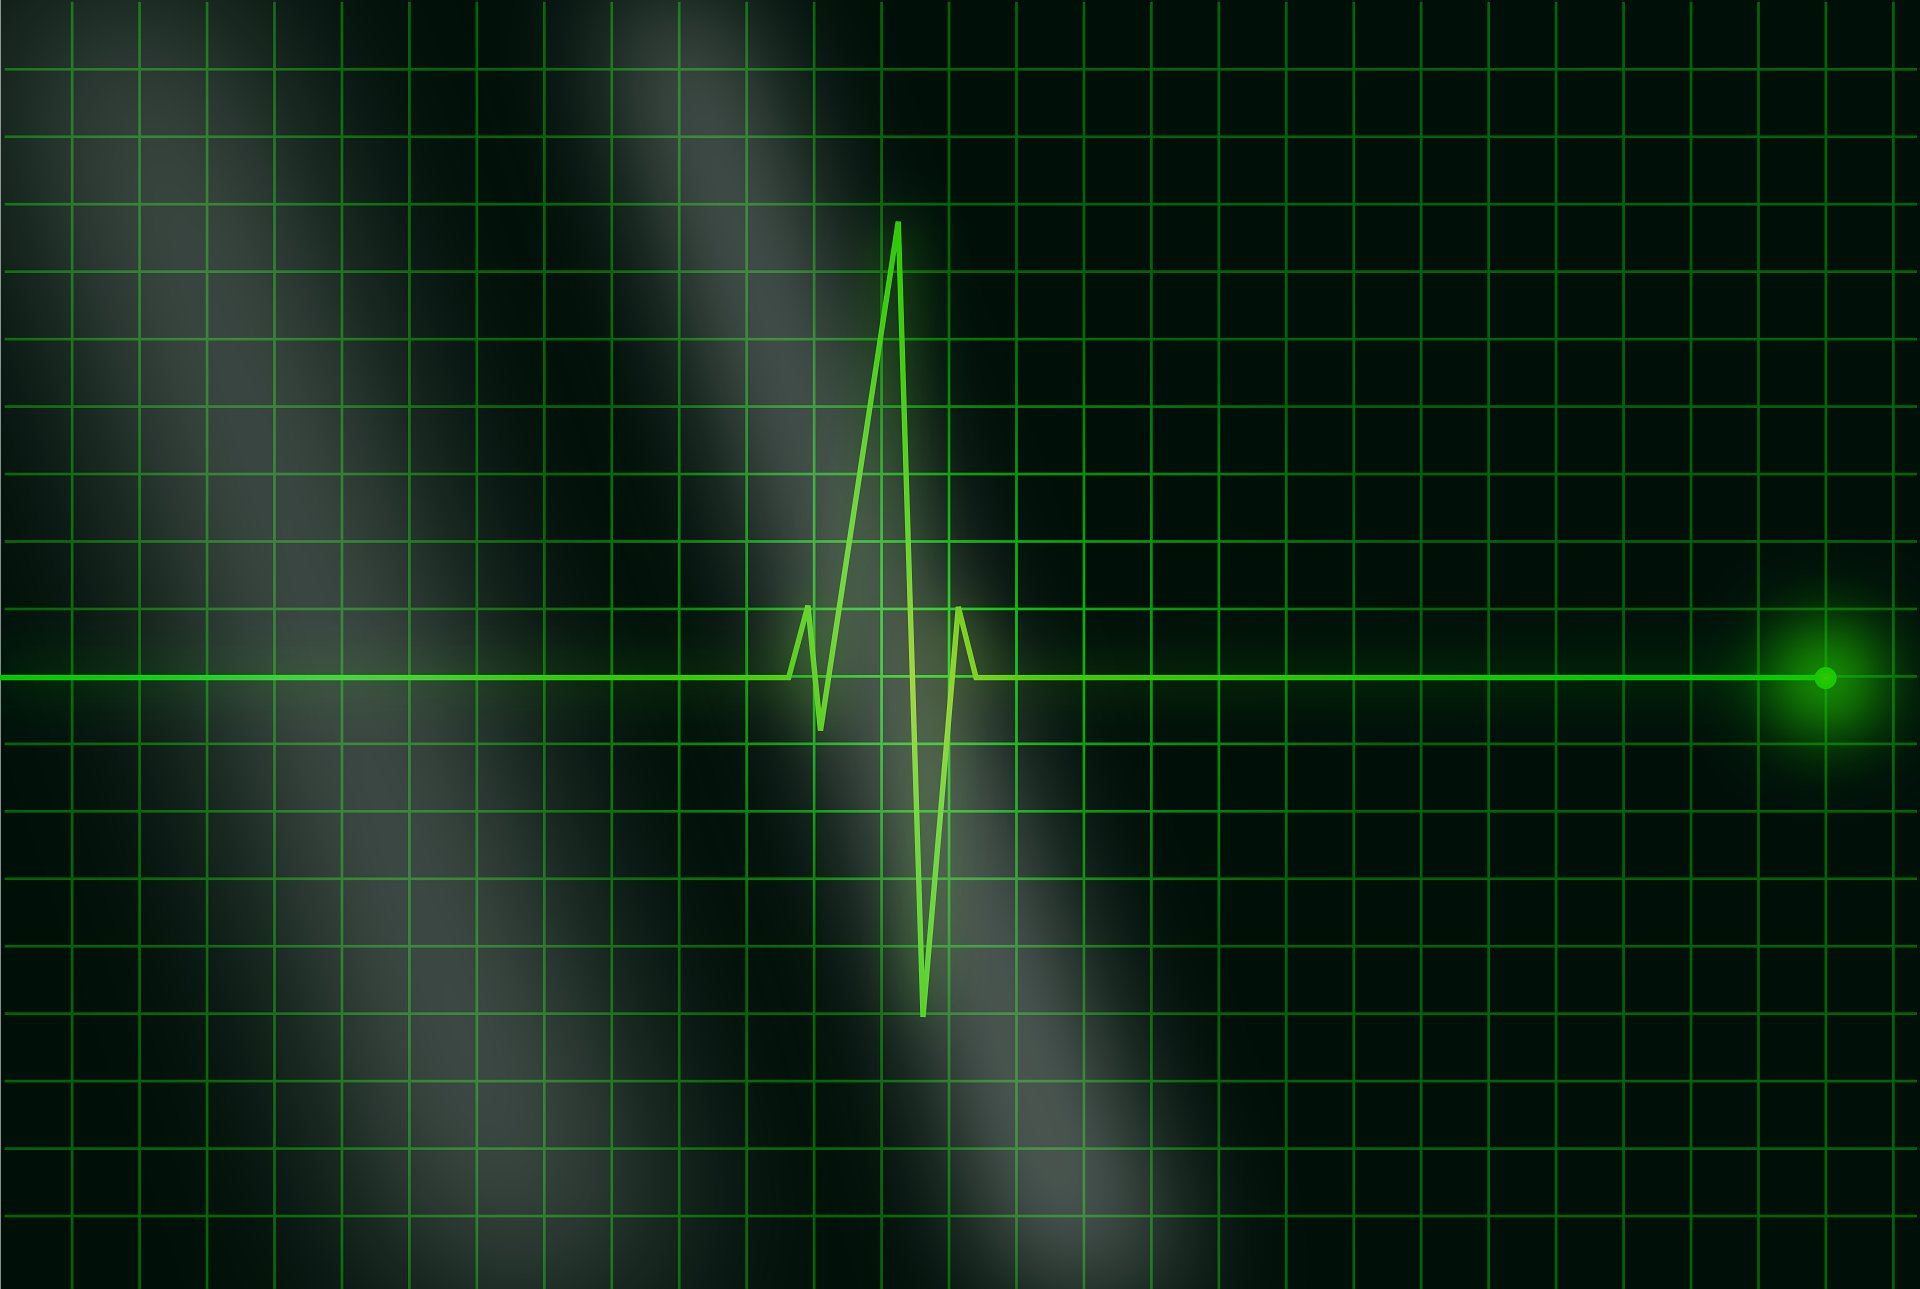 Deep learning AI may identify atrial fibrillation from a